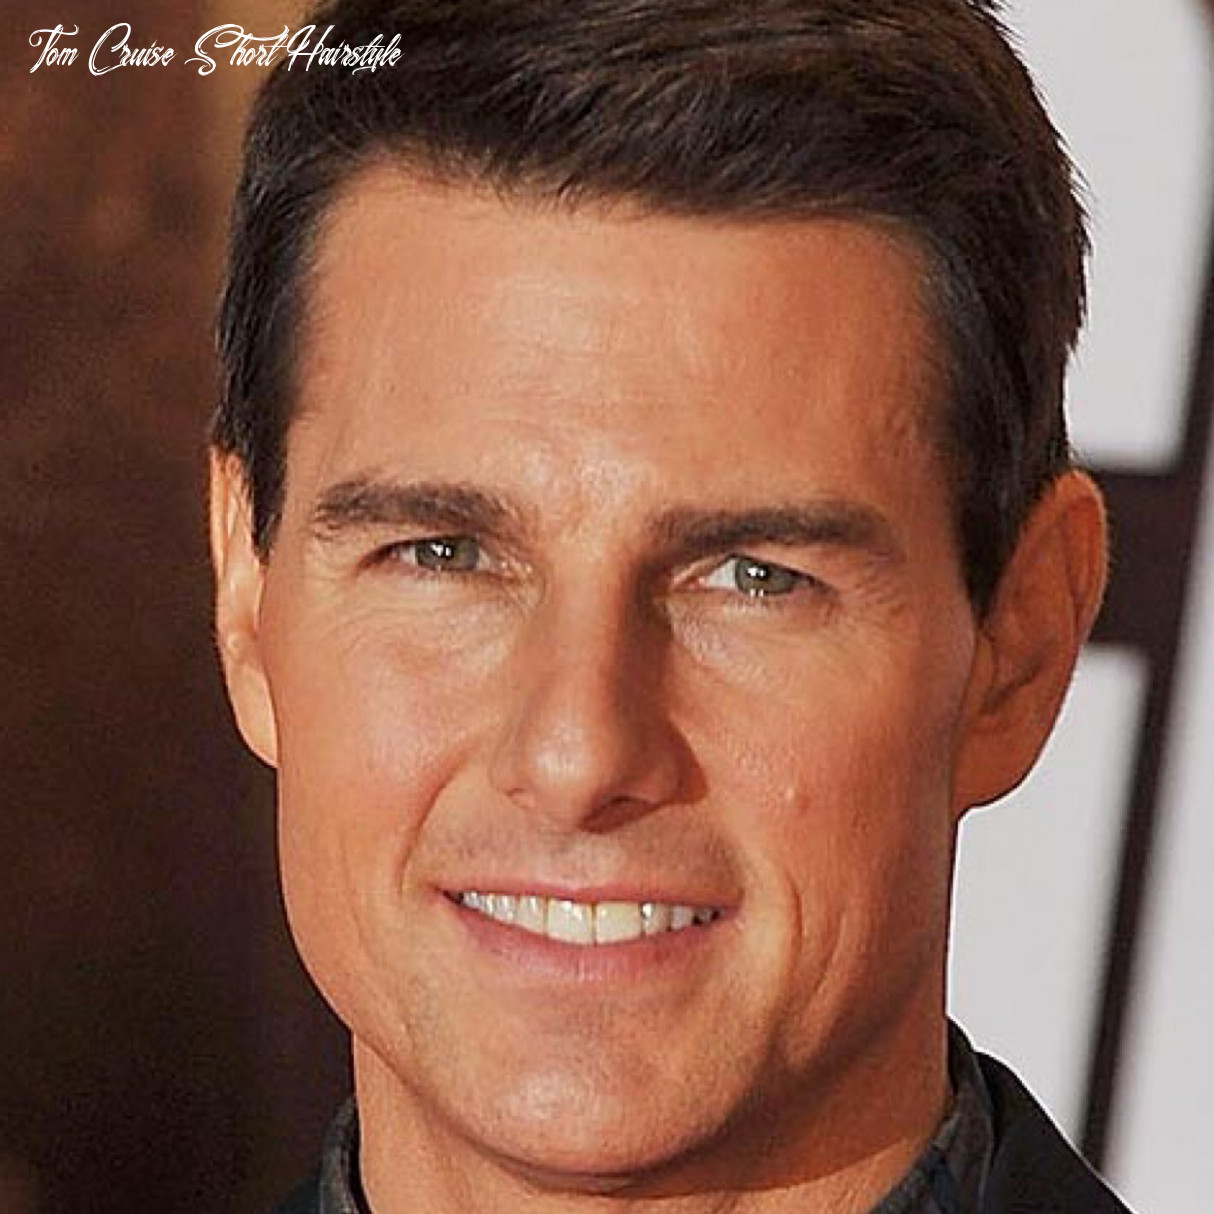 Tom cruise hairstyles 12 terriffic collections | design press tom cruise short hairstyle